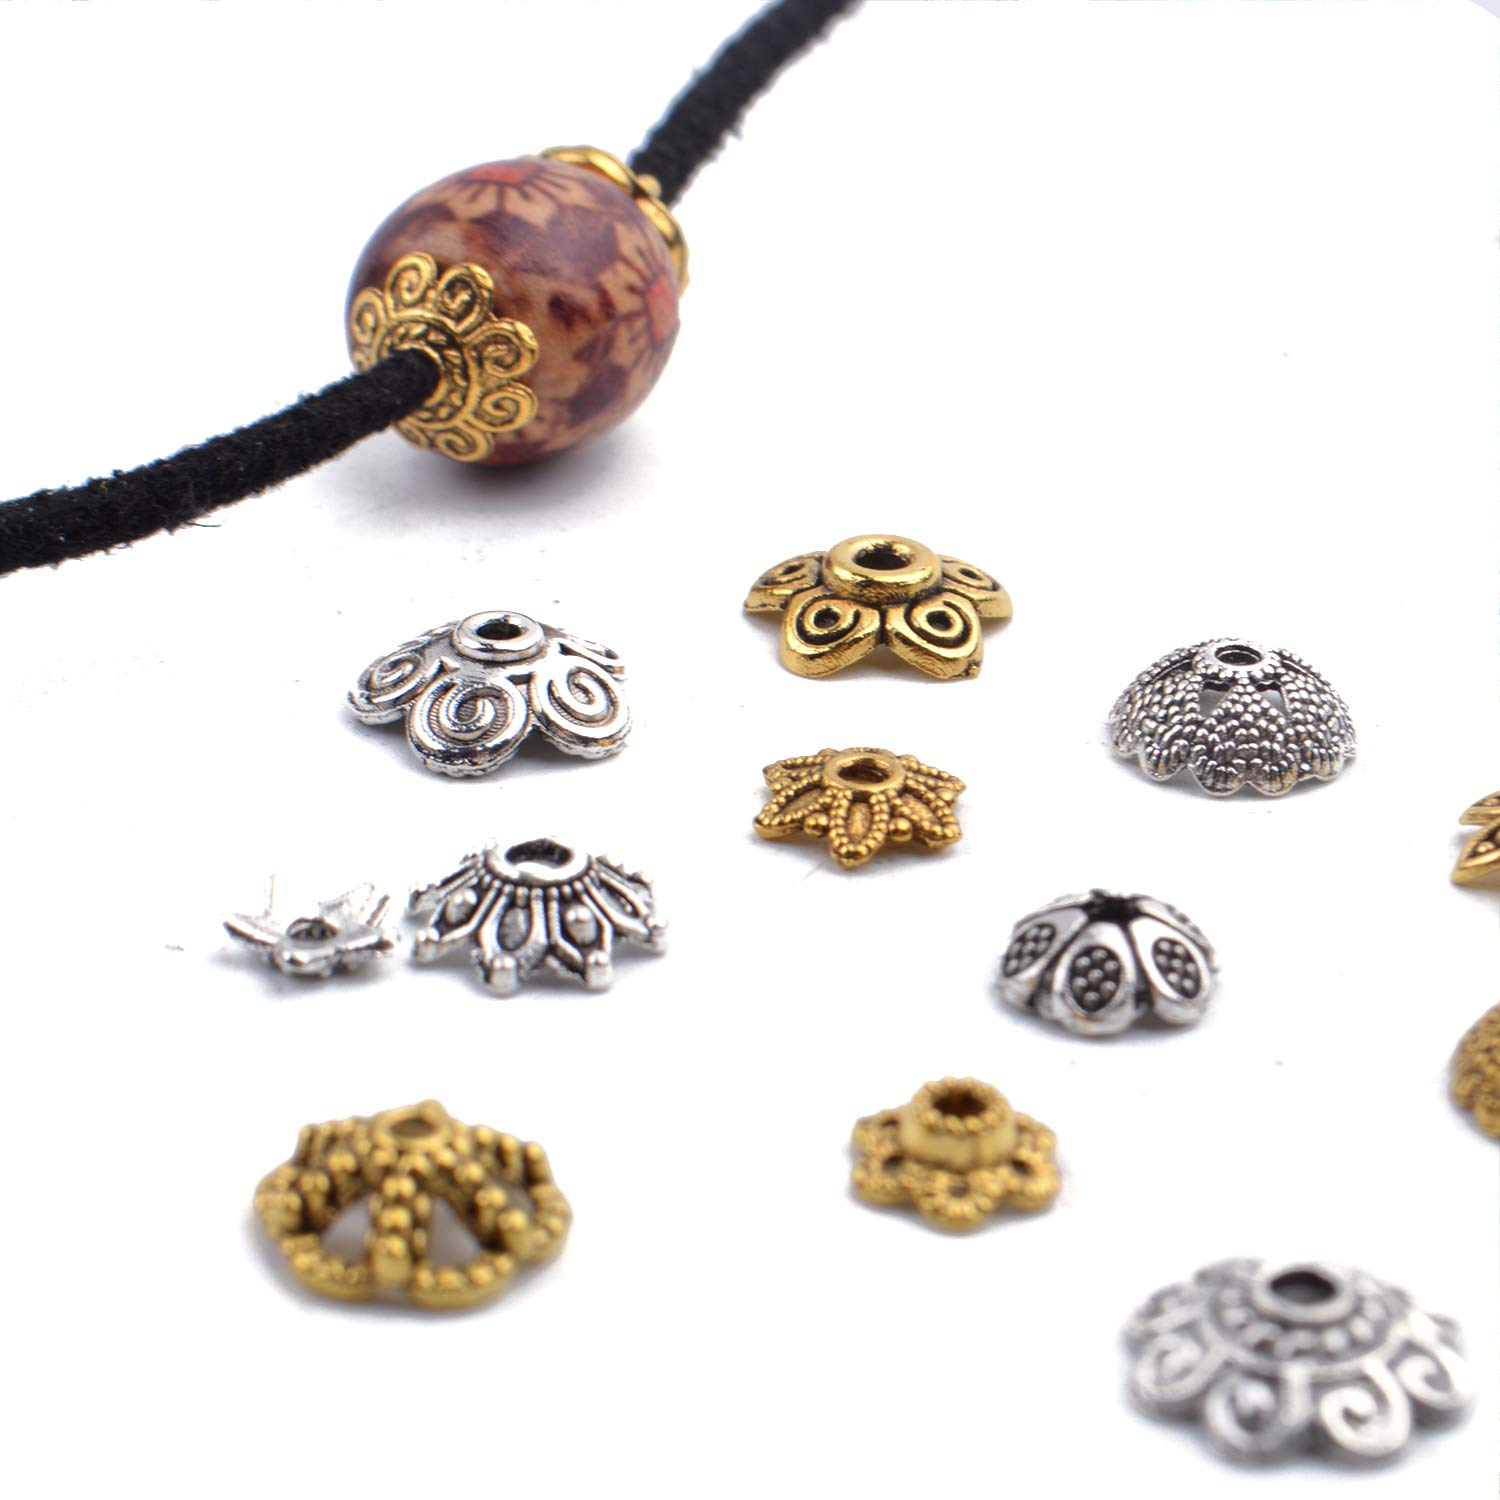 Mixed Metal Flower Bead Caps Spacer Beads Bali Style Jewelry Findings for DIY Crafting Jewelry Making 100g Antique Gold and Antique Silver 200-350pcs